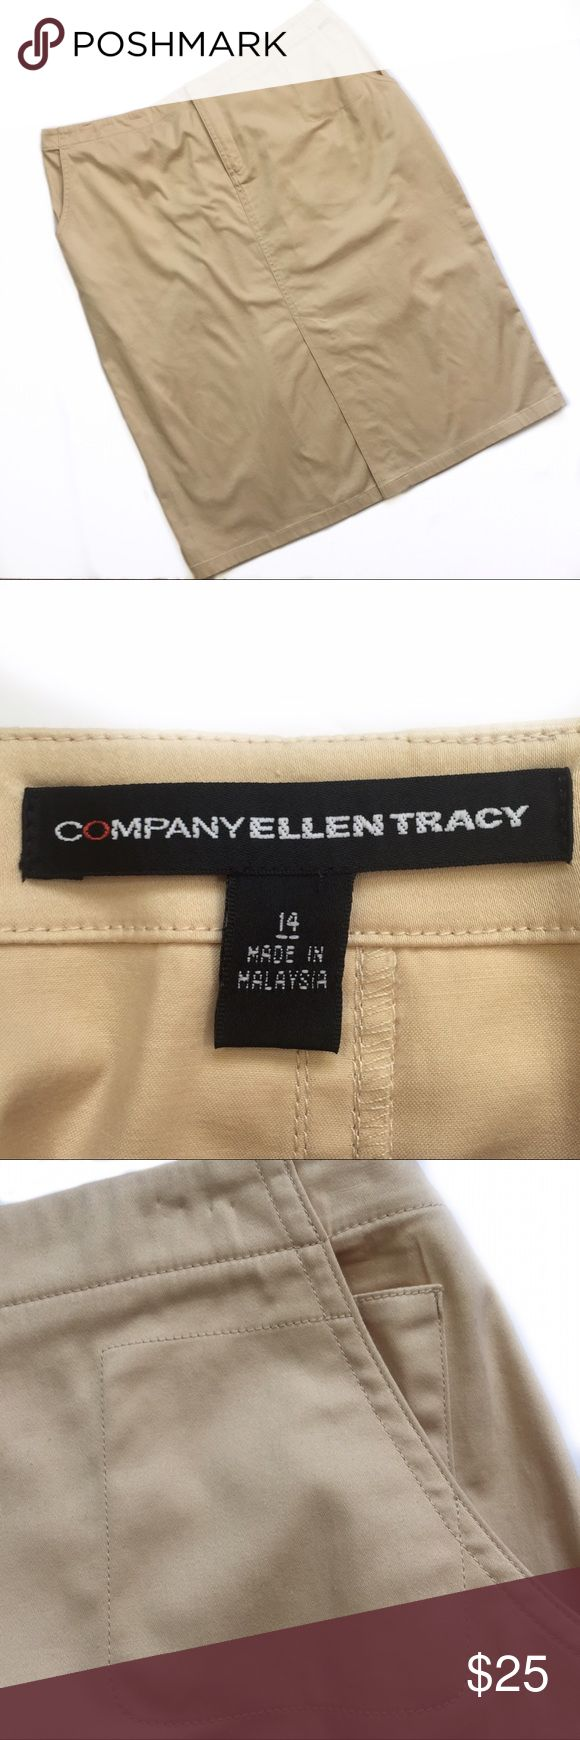 """Company Ellen Tracy khaki pencil skirt plus size Size 14 - Ellen Tracy - super cute khaki pencil skirt with a 5 pocket style. Zipper and hidden hook & eye closure at front. Split at front middle of skirt to allow for movement. Dress it up or keep it casual! Waist laying flat measures 17.5"""" across (might be worn a little high waisted). Hips (at widest point) measures 24"""" across, laying flat. In like-new condition. Ellen Tracy Skirts Pencil"""